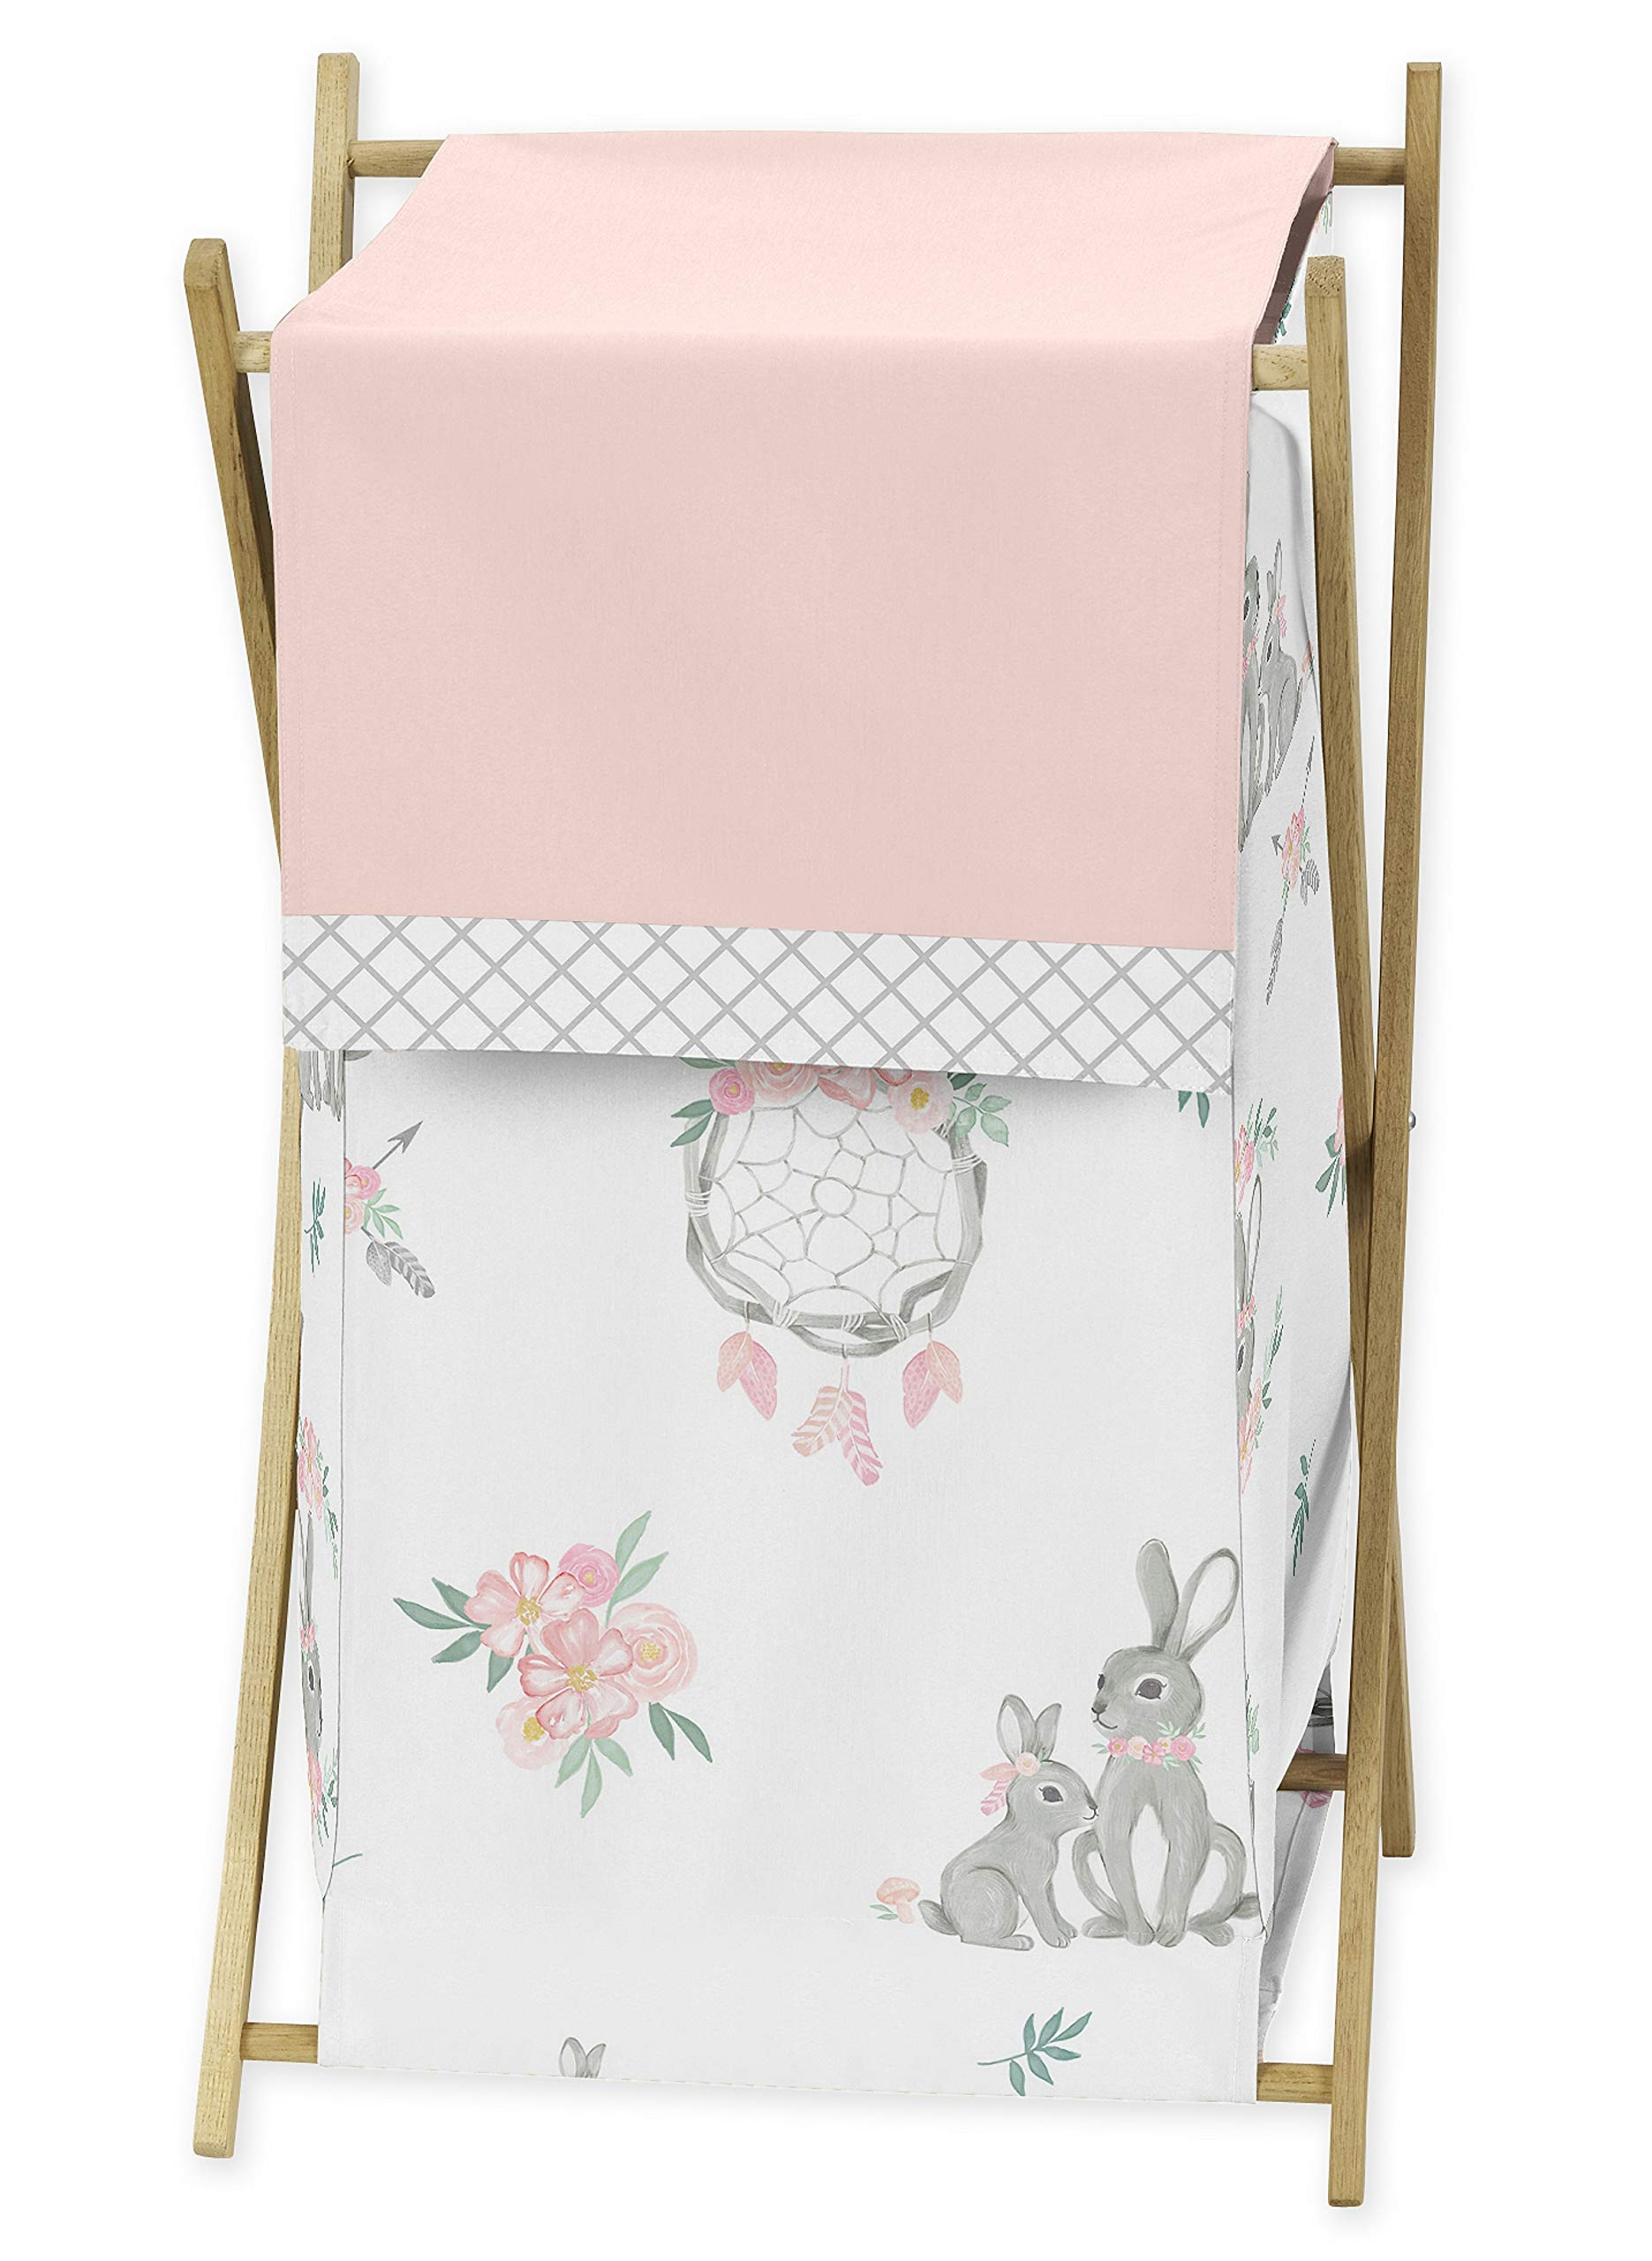 Sweet Jojo Designs Blush Pink and Grey Woodland Boho Dream Catcher Arrow Baby Kid Clothes Laundry Hamper for Gray Bunny Floral Collection - Watercolor Rose Flower